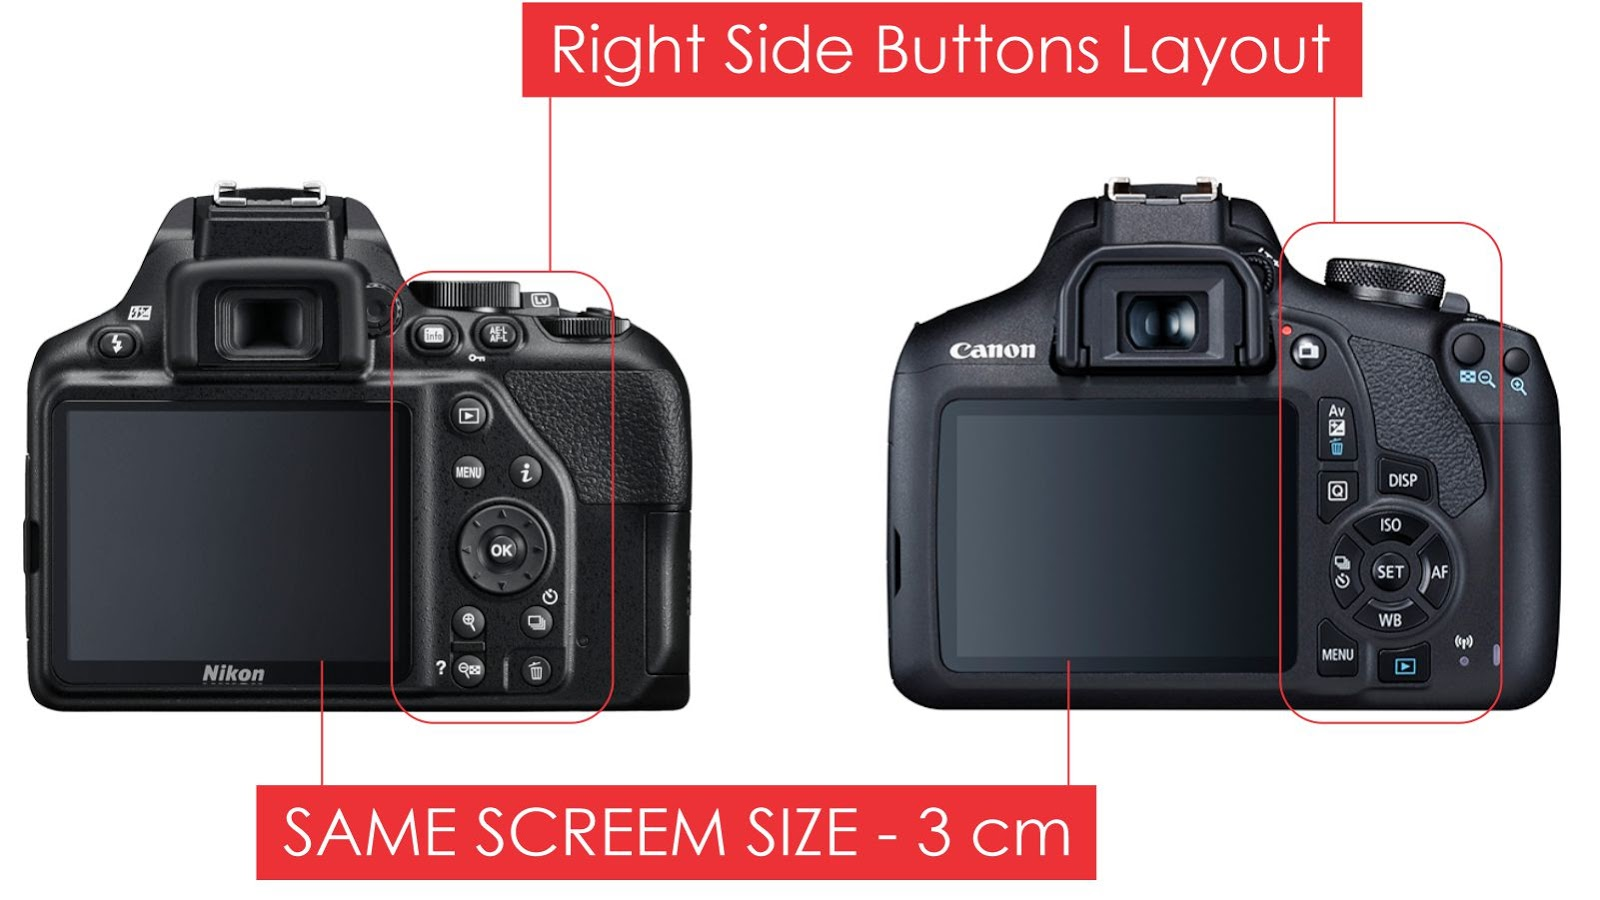 Nikon D3500 and Canon 1500D Screen Size and Buttons